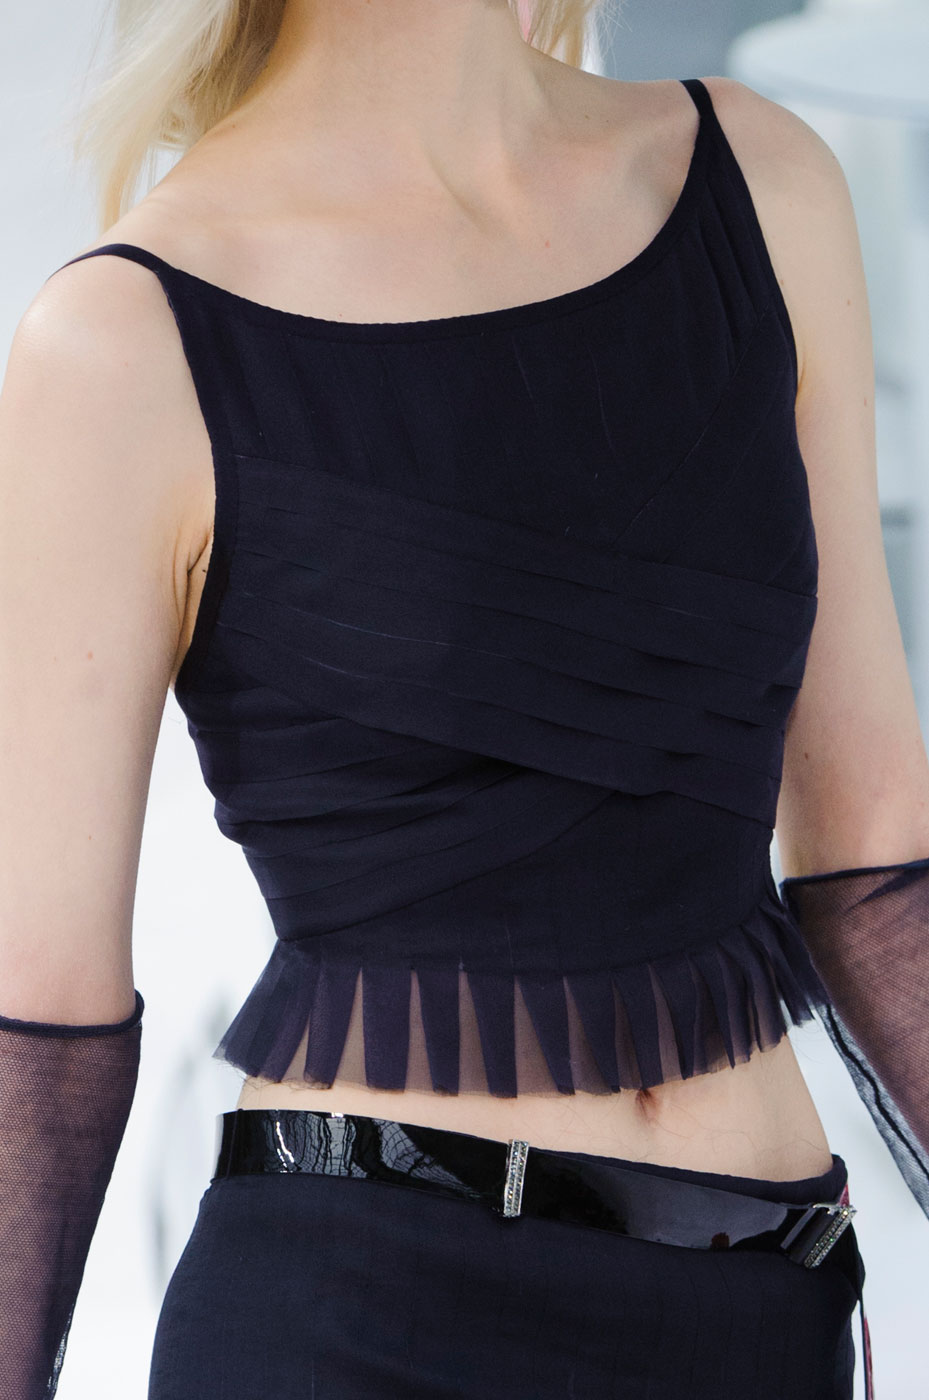 Chanel-fashion-runway-show-close-ups-haute-couture-paris-spring-summer-2015-the-impression-086